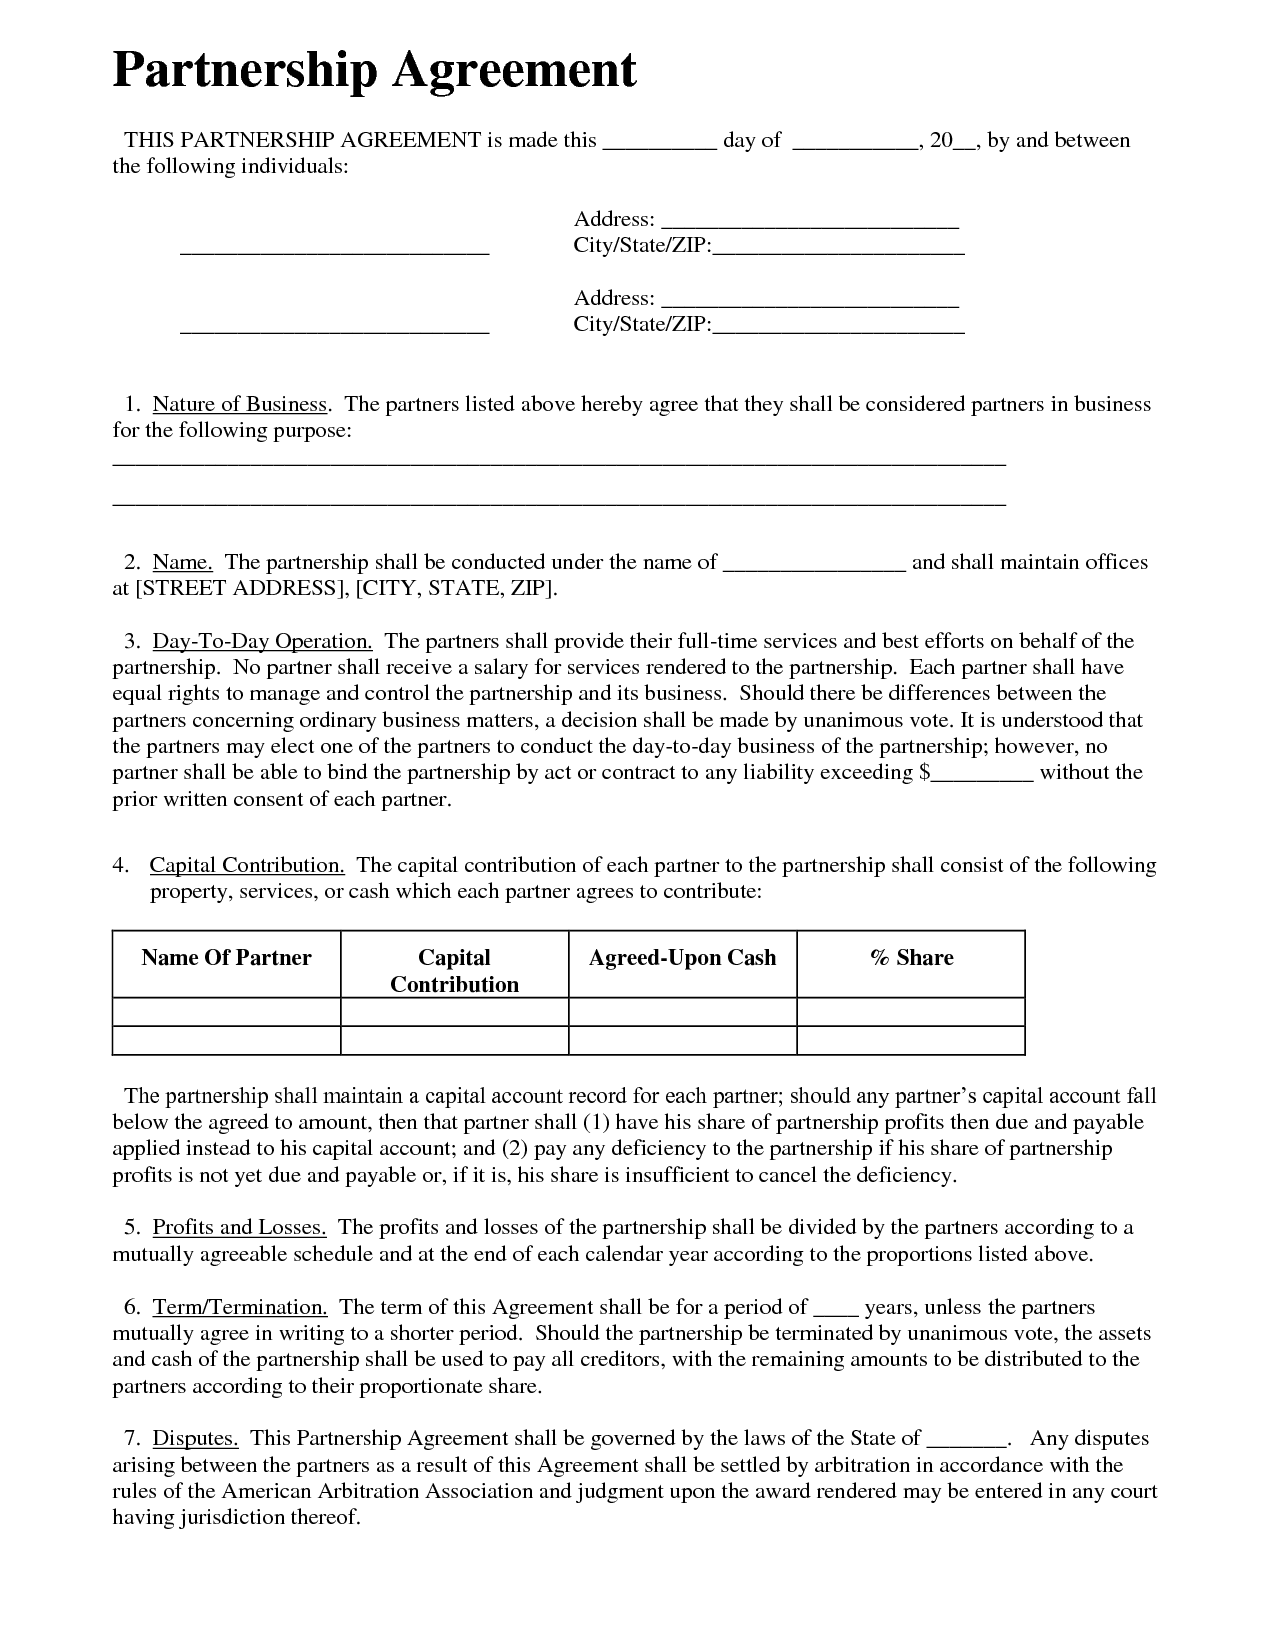 commercial property licence agreement template - partnership agreement business templates pinterest